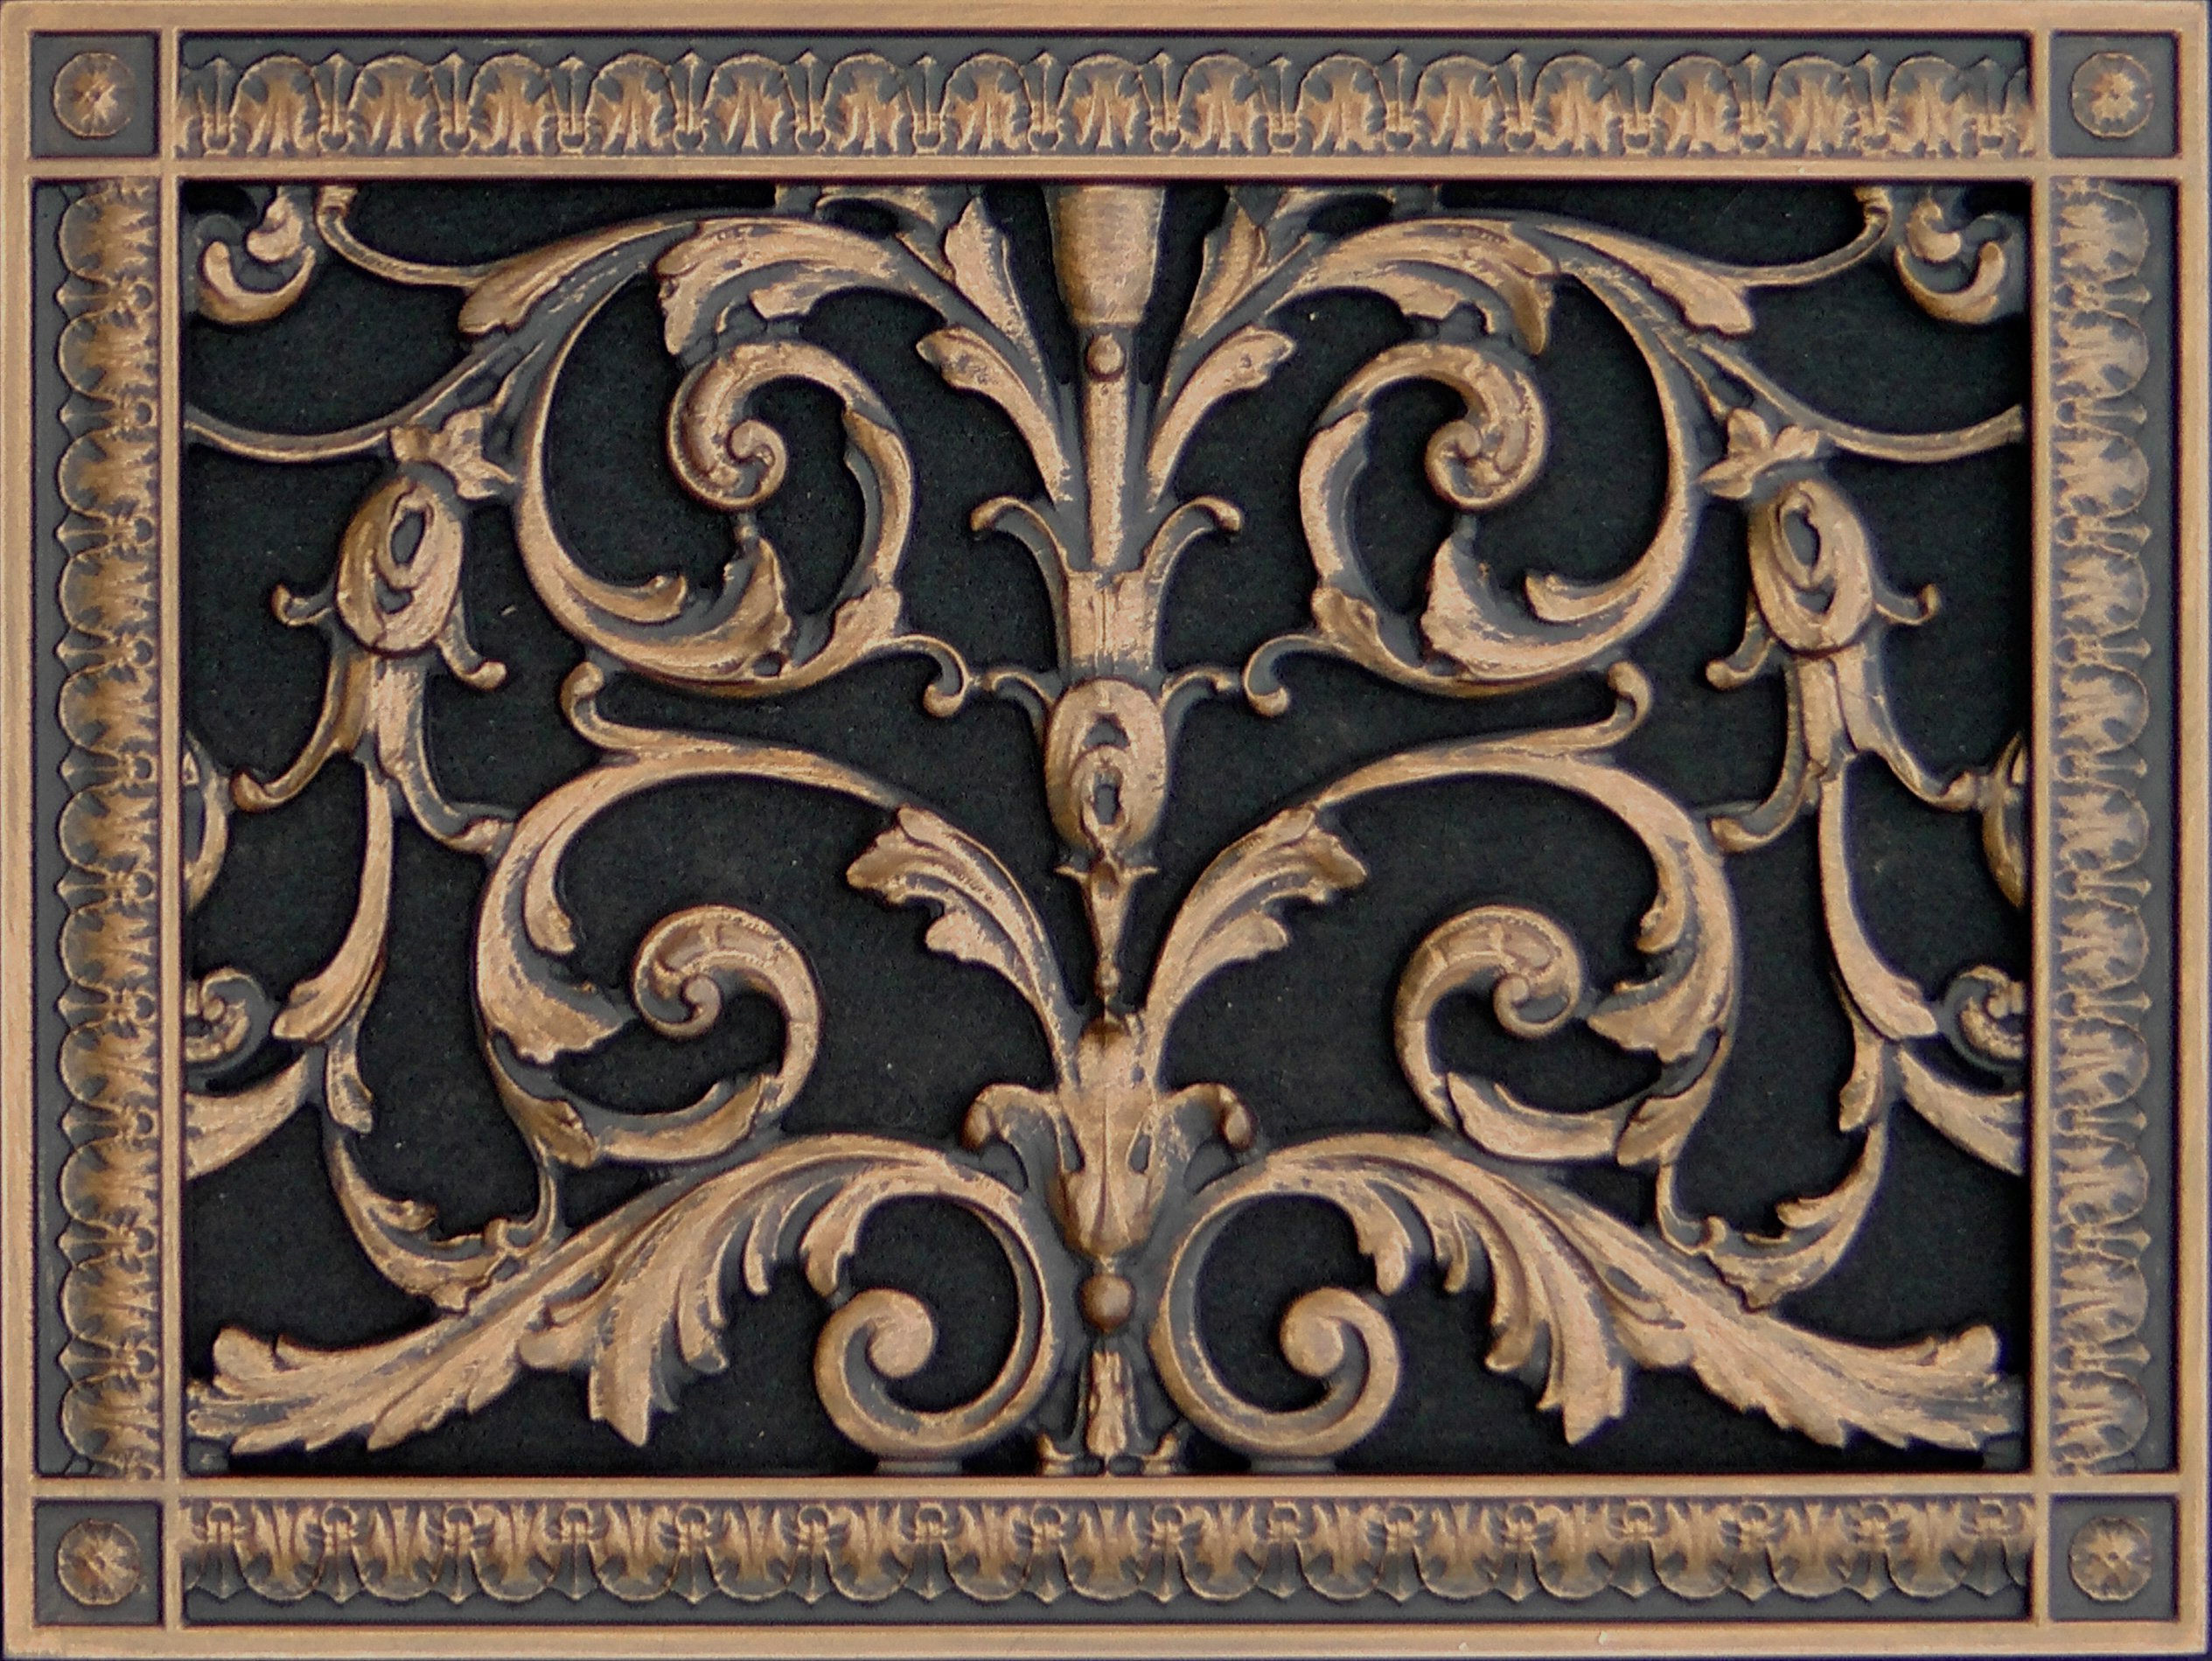 "Decorative Vent Cover, Grille, made of Urethane Resin in Louis XIV, French style fits over a 10"" x 14"", Total size, 12"" by 16"", for wall & ceiling installation only. (not for floors) (Rubbed Bronze) by Beaux-Artes, Ltd."